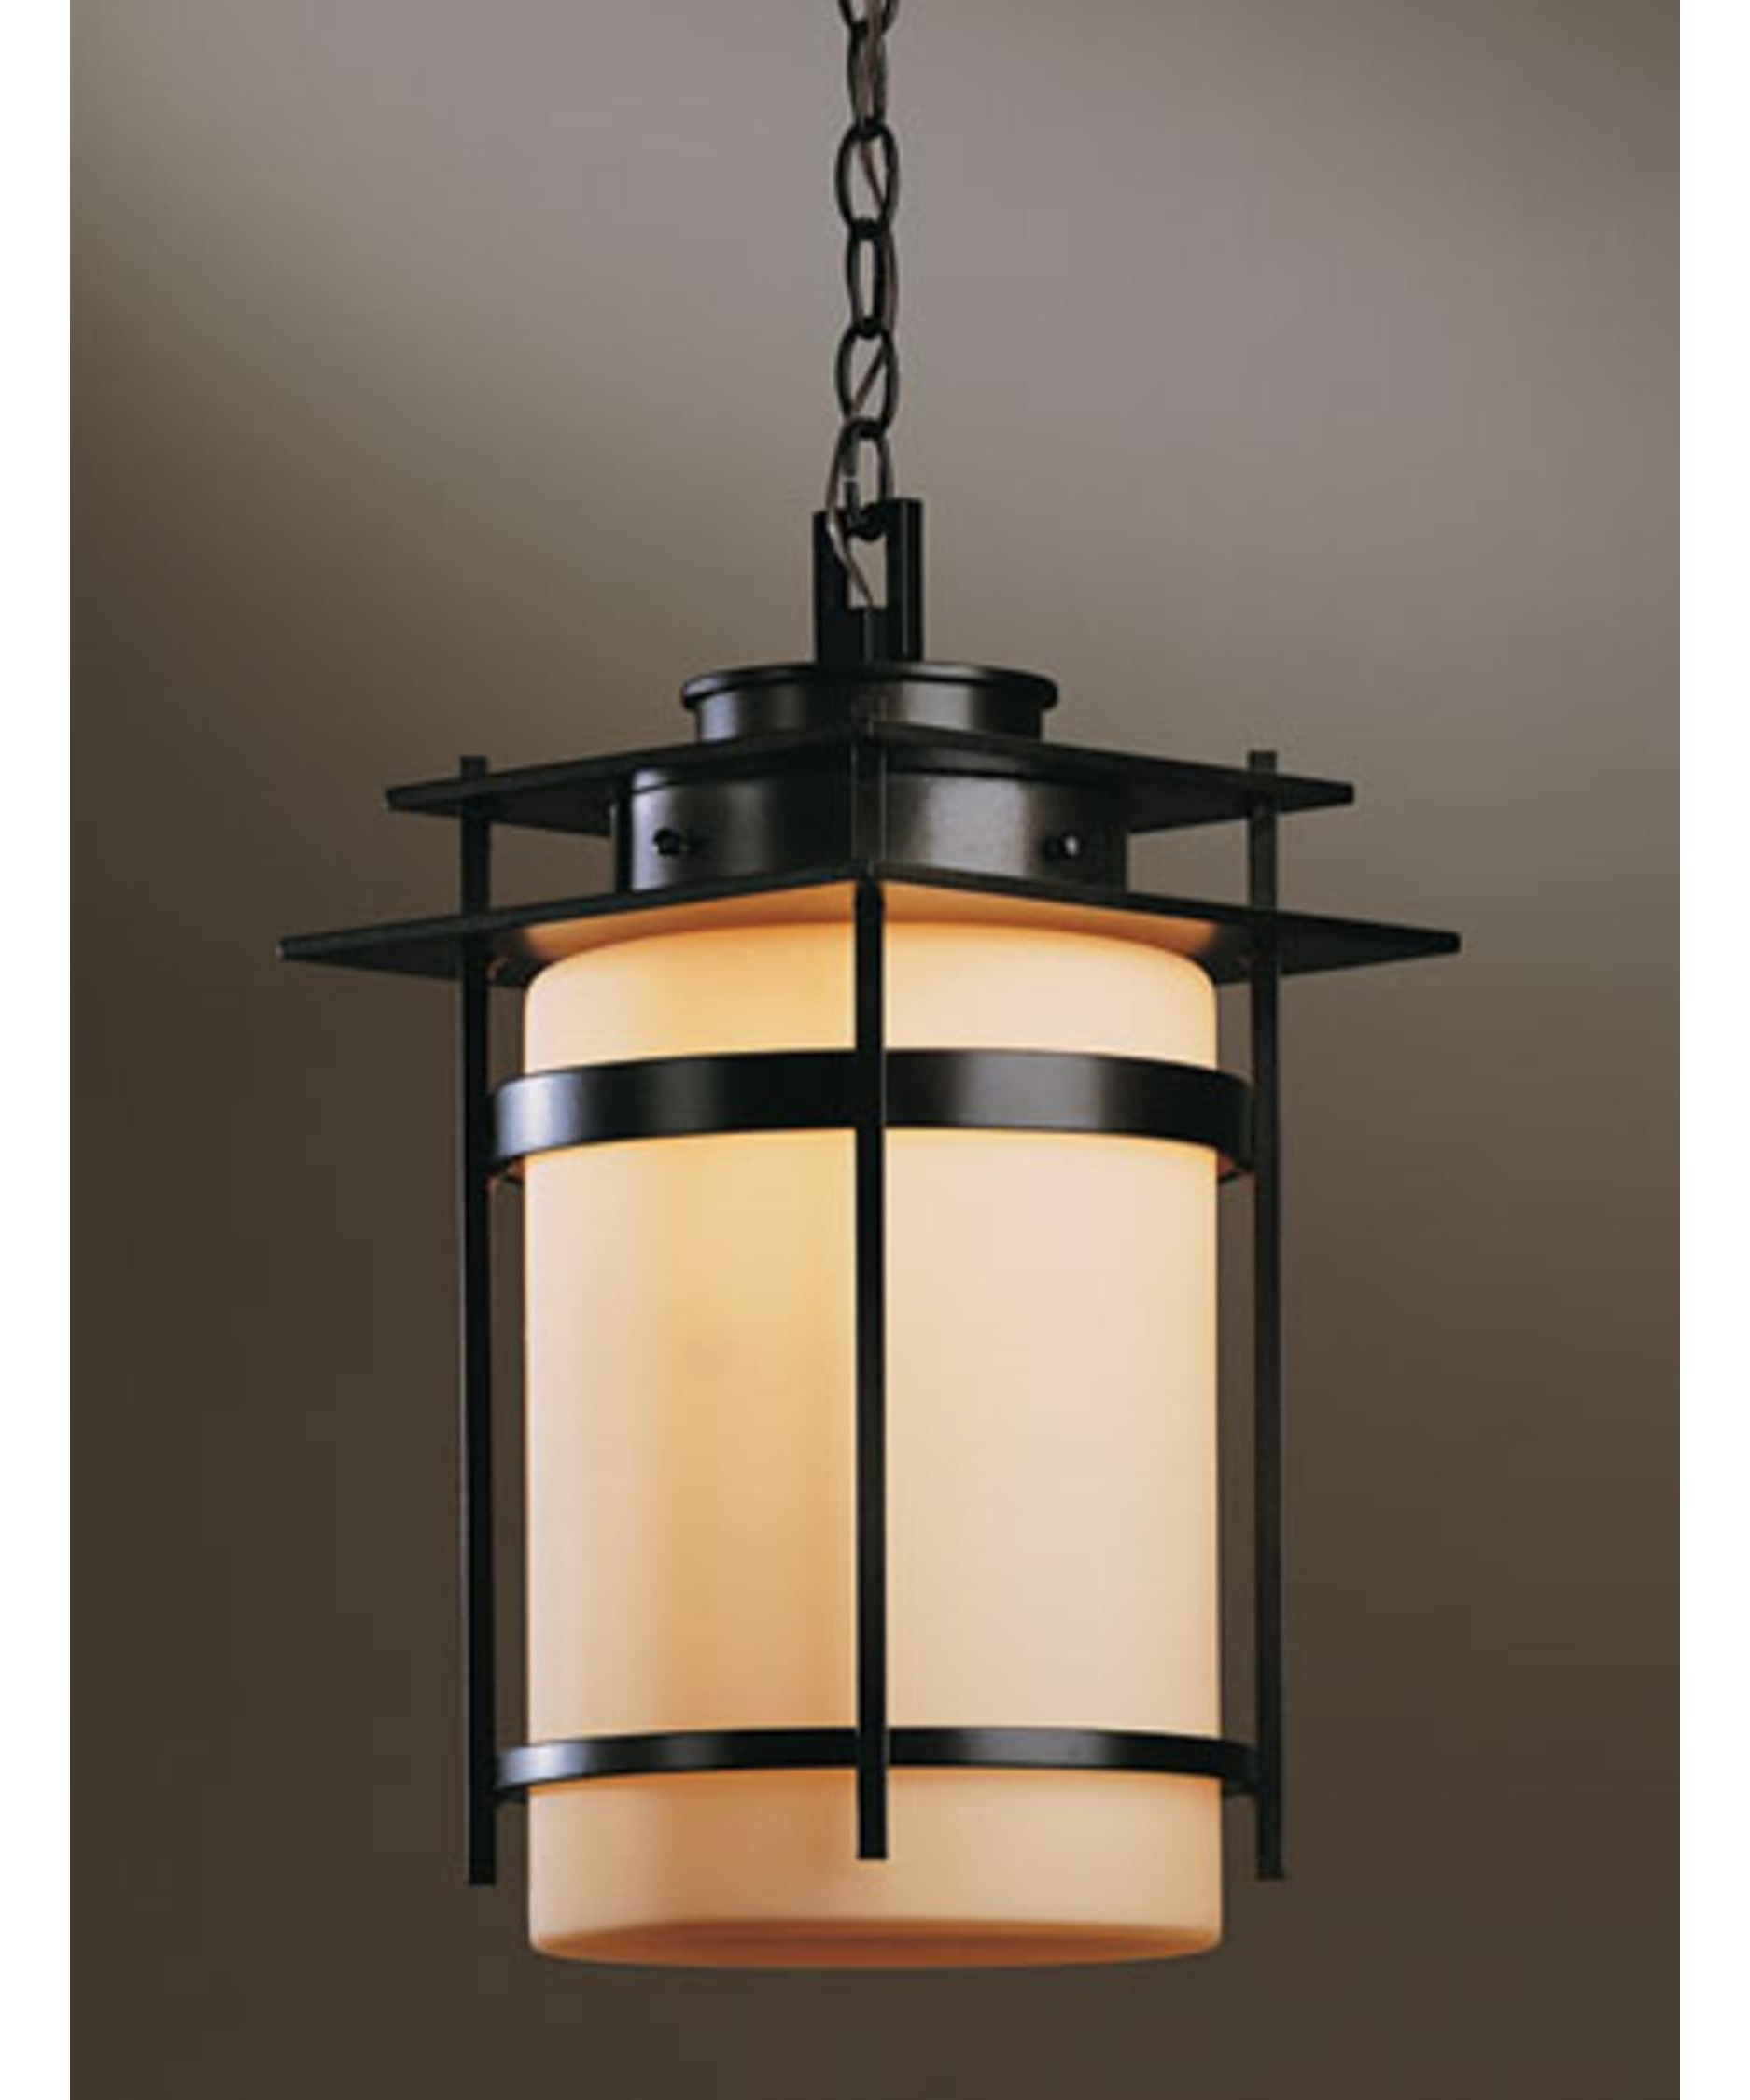 Widely Used Hanging Porch Hinkley Lighting In Hanging Porch Light Hinkley Lighting 2372 Nantucket 6 Inch Wide  (View 19 of 20)